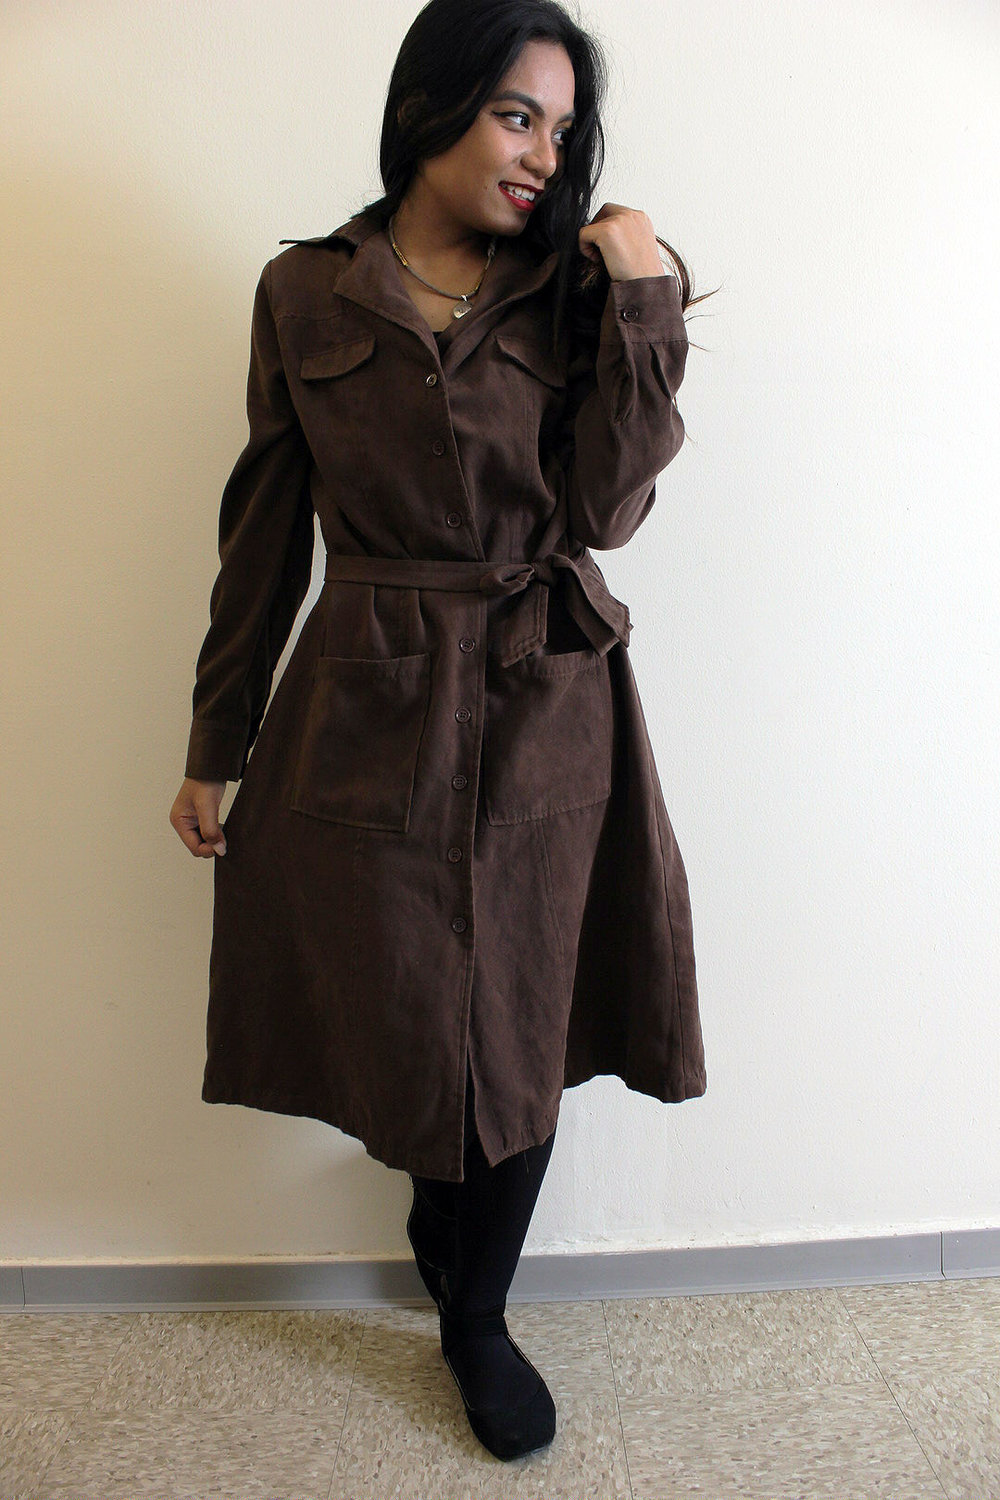 Trench-Coat-Dresses-Work-Appropriate-Office-Wear-Blogger-Style-LINDA-TENCHITRAN-11-1616x1080.jpg